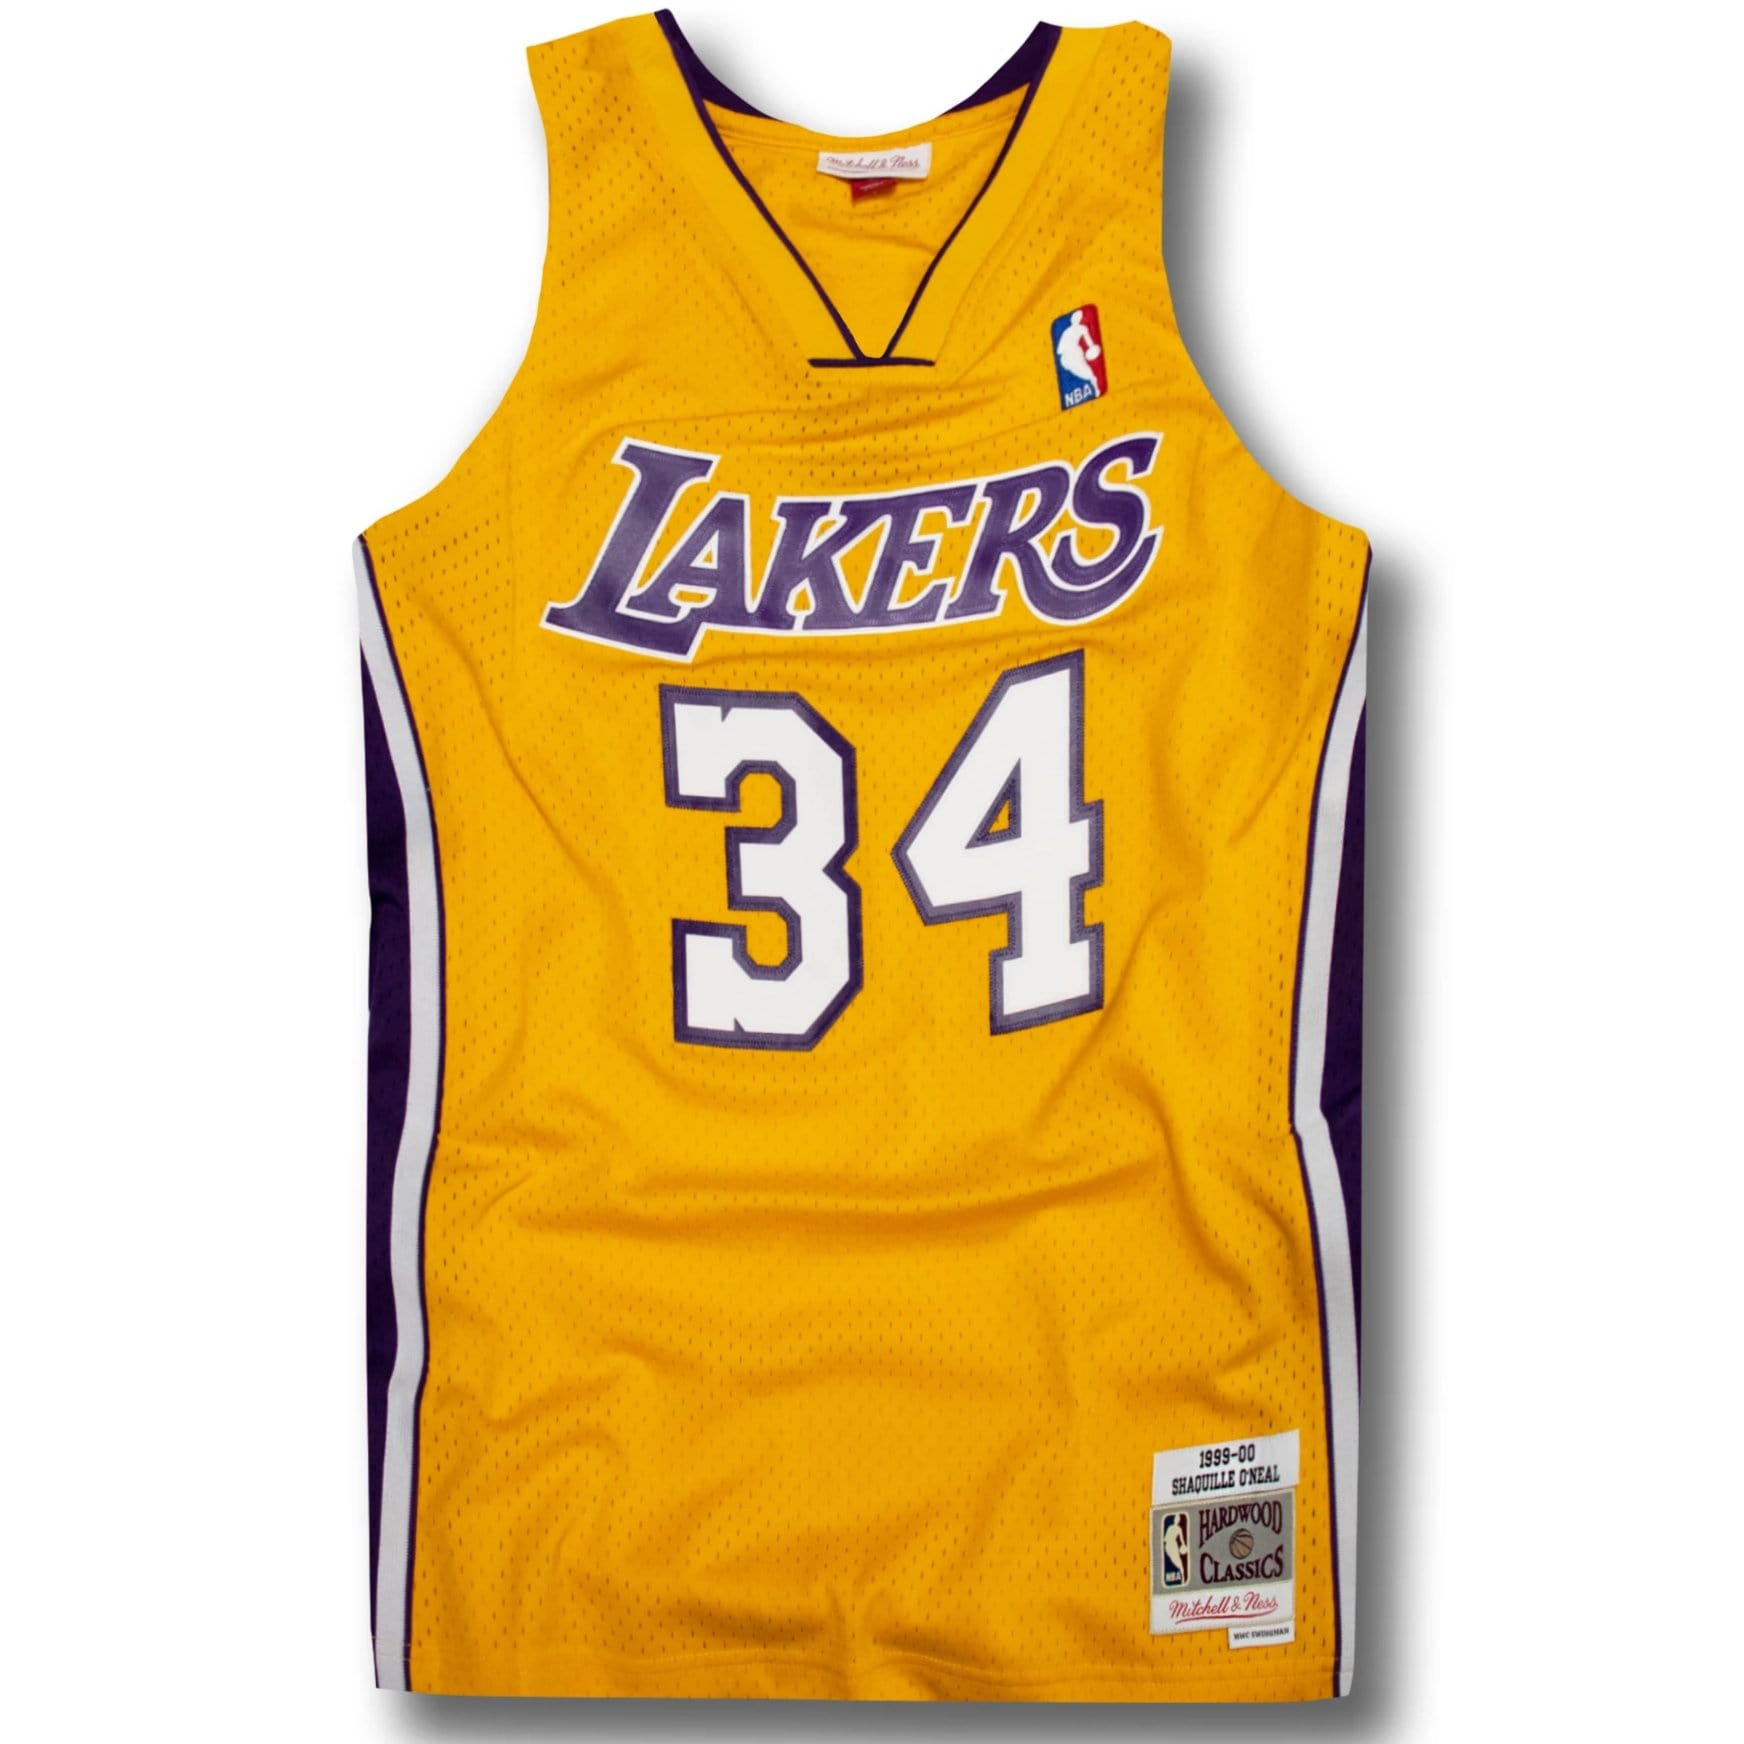 shaq lakers jersey for sale